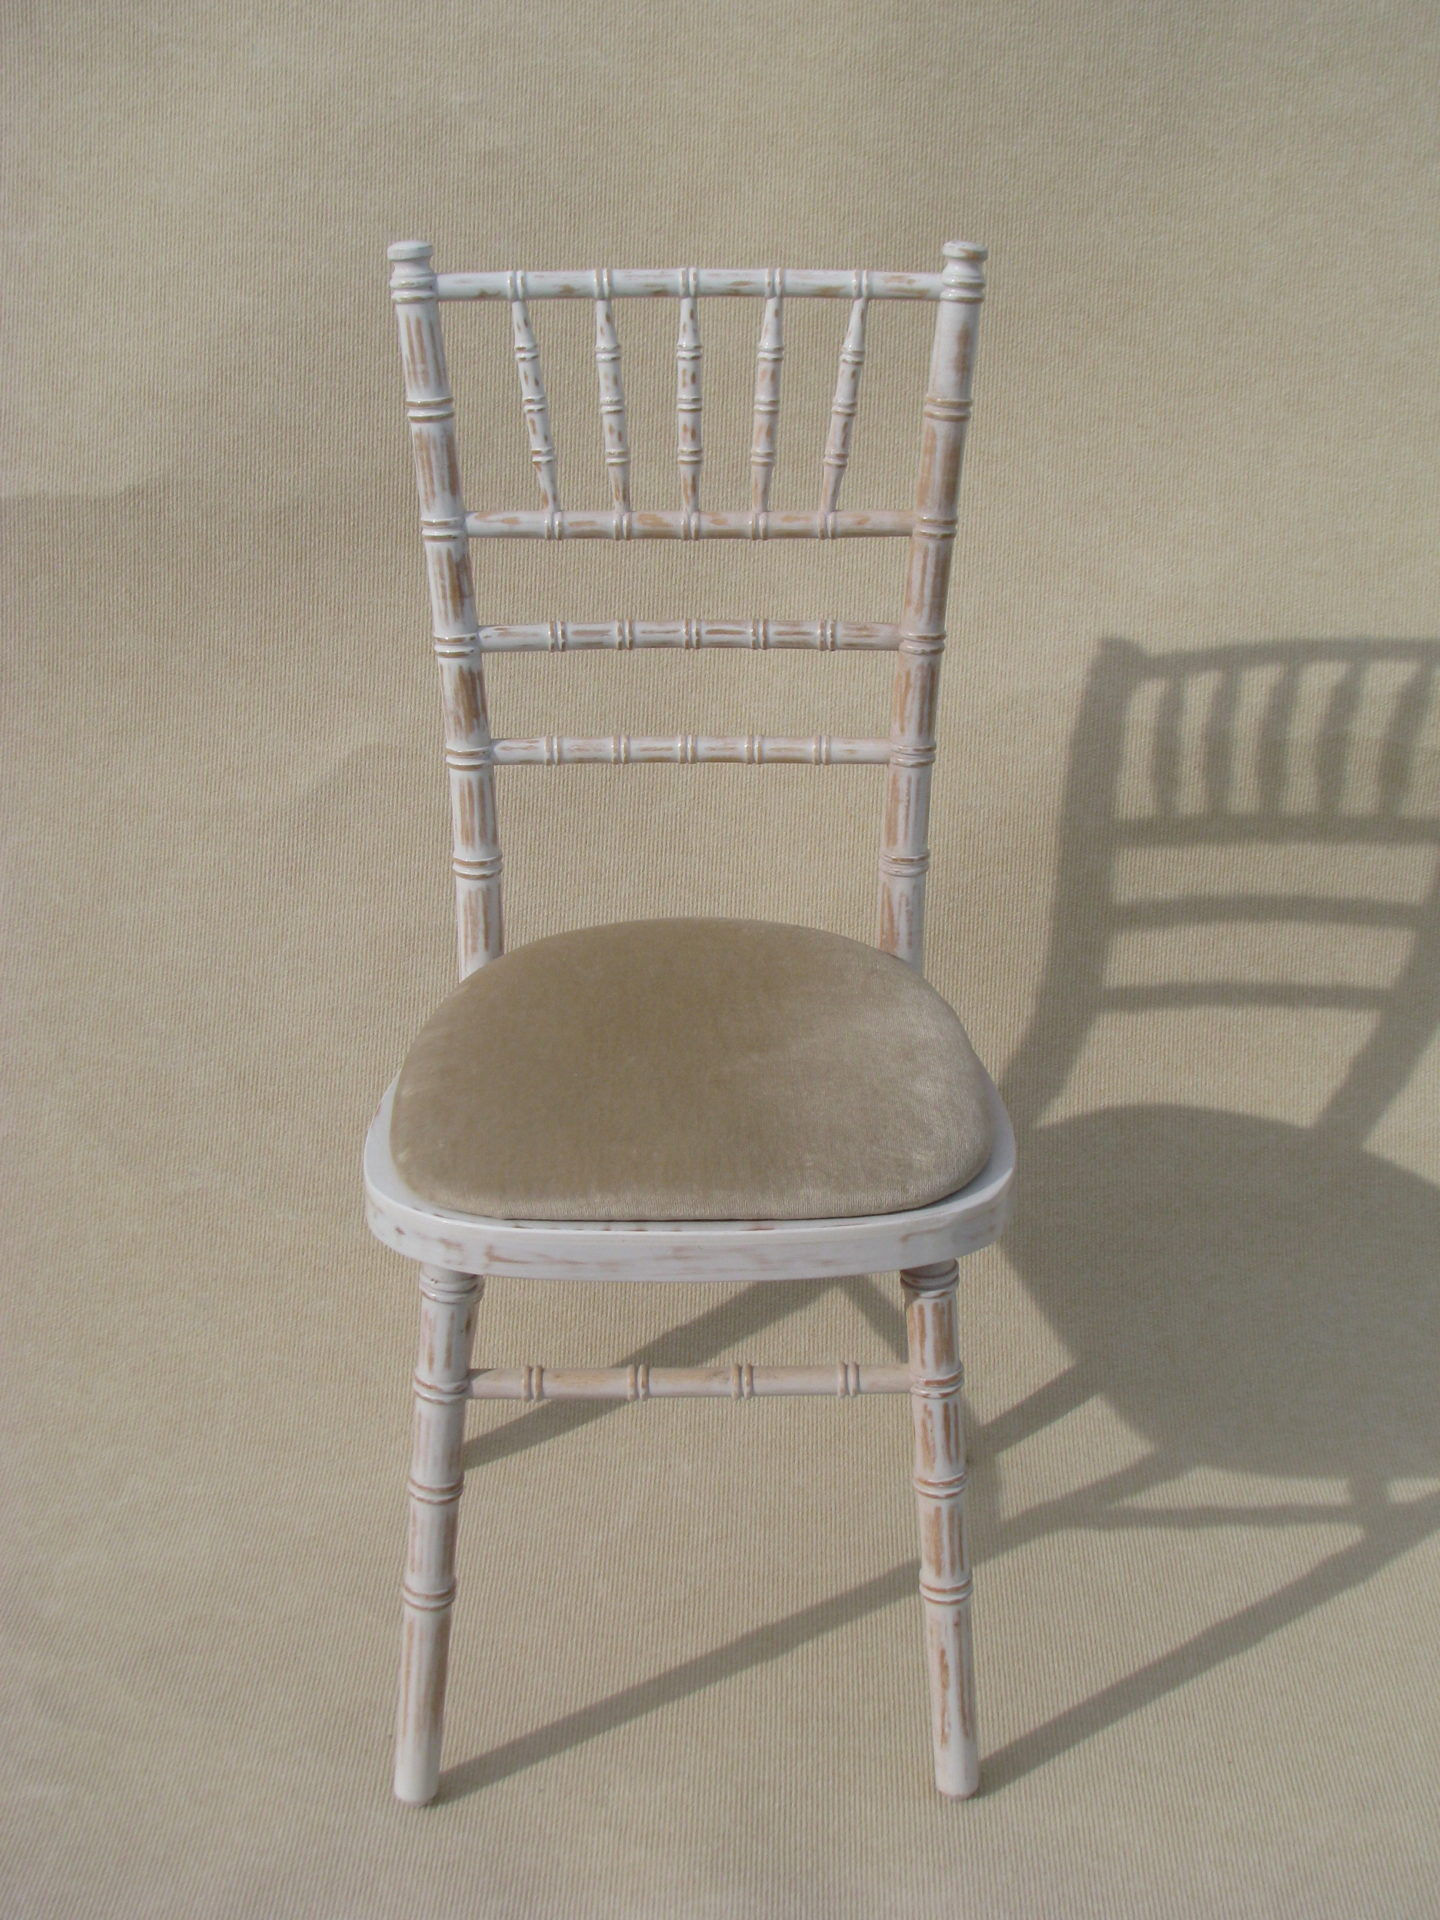 Furniture Hire In Somerset Bath Bristol The South West - Banqueting chair hire